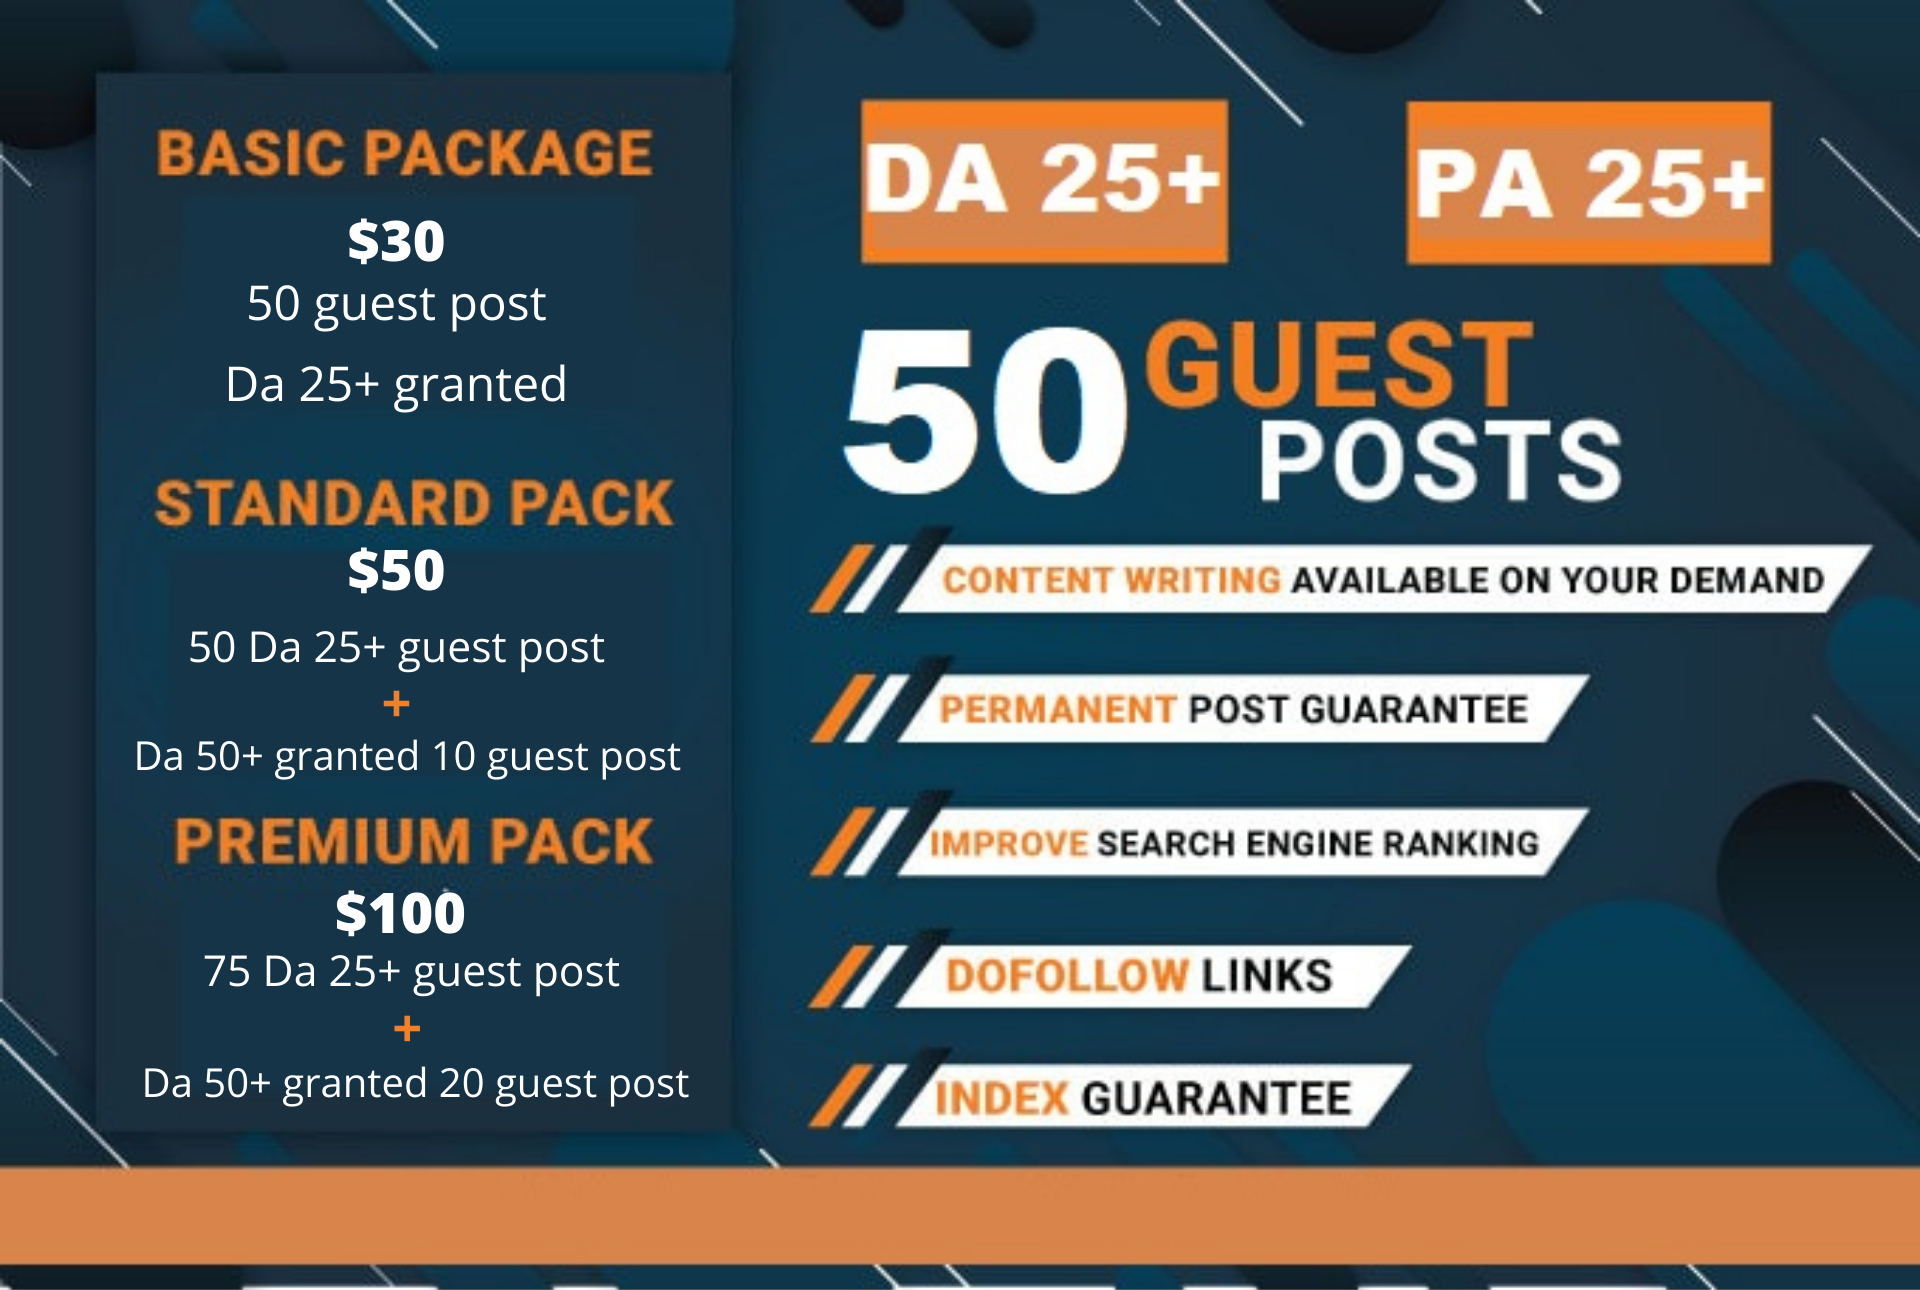 I will publish 50 guest post DA 25+ granted